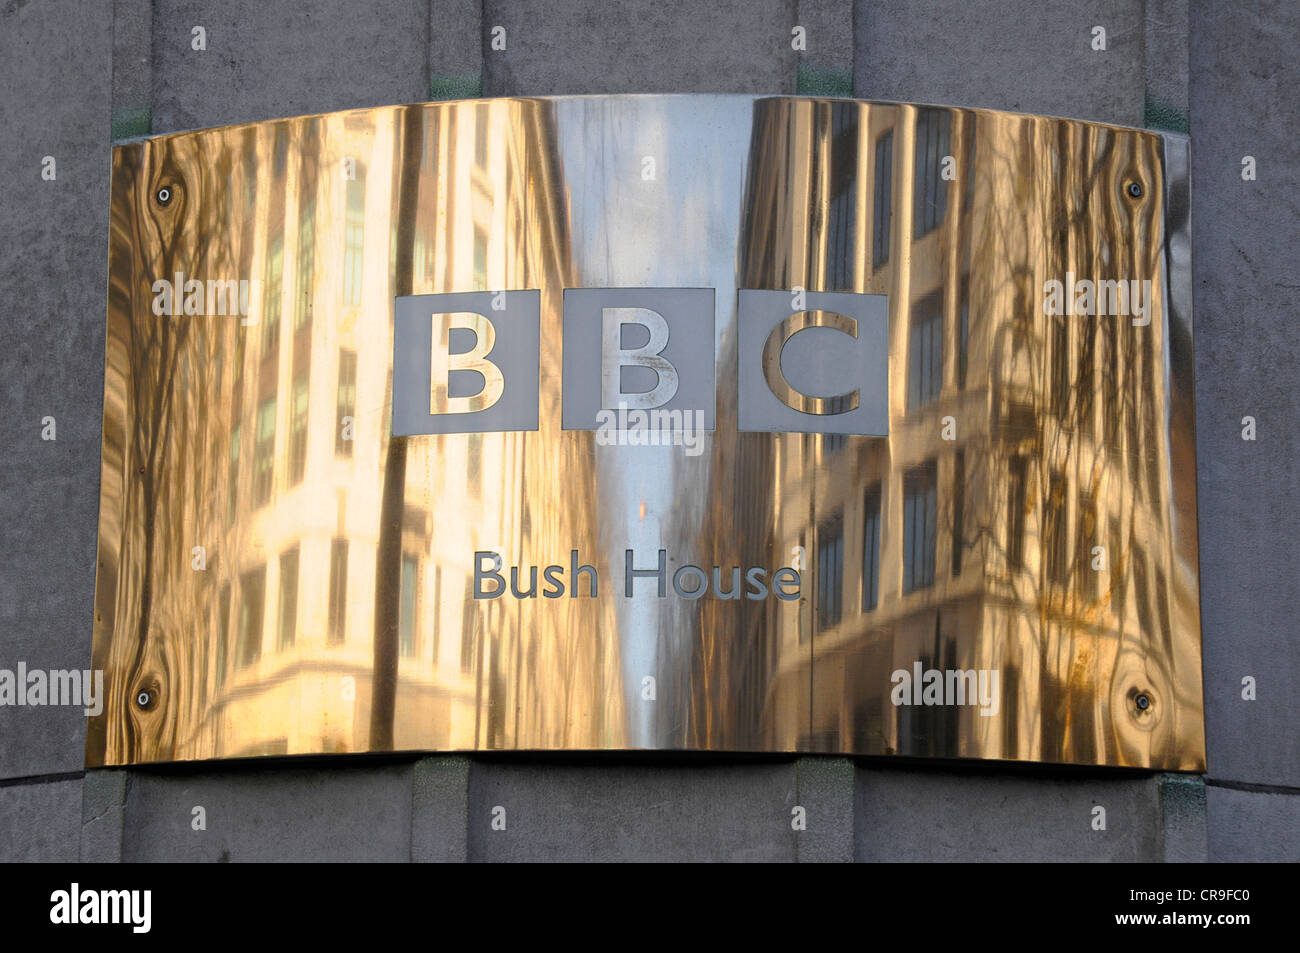 Brass BBC name plate & reflections on curved surface outside of the Bush House headquarters building for BBC World Stock Photo